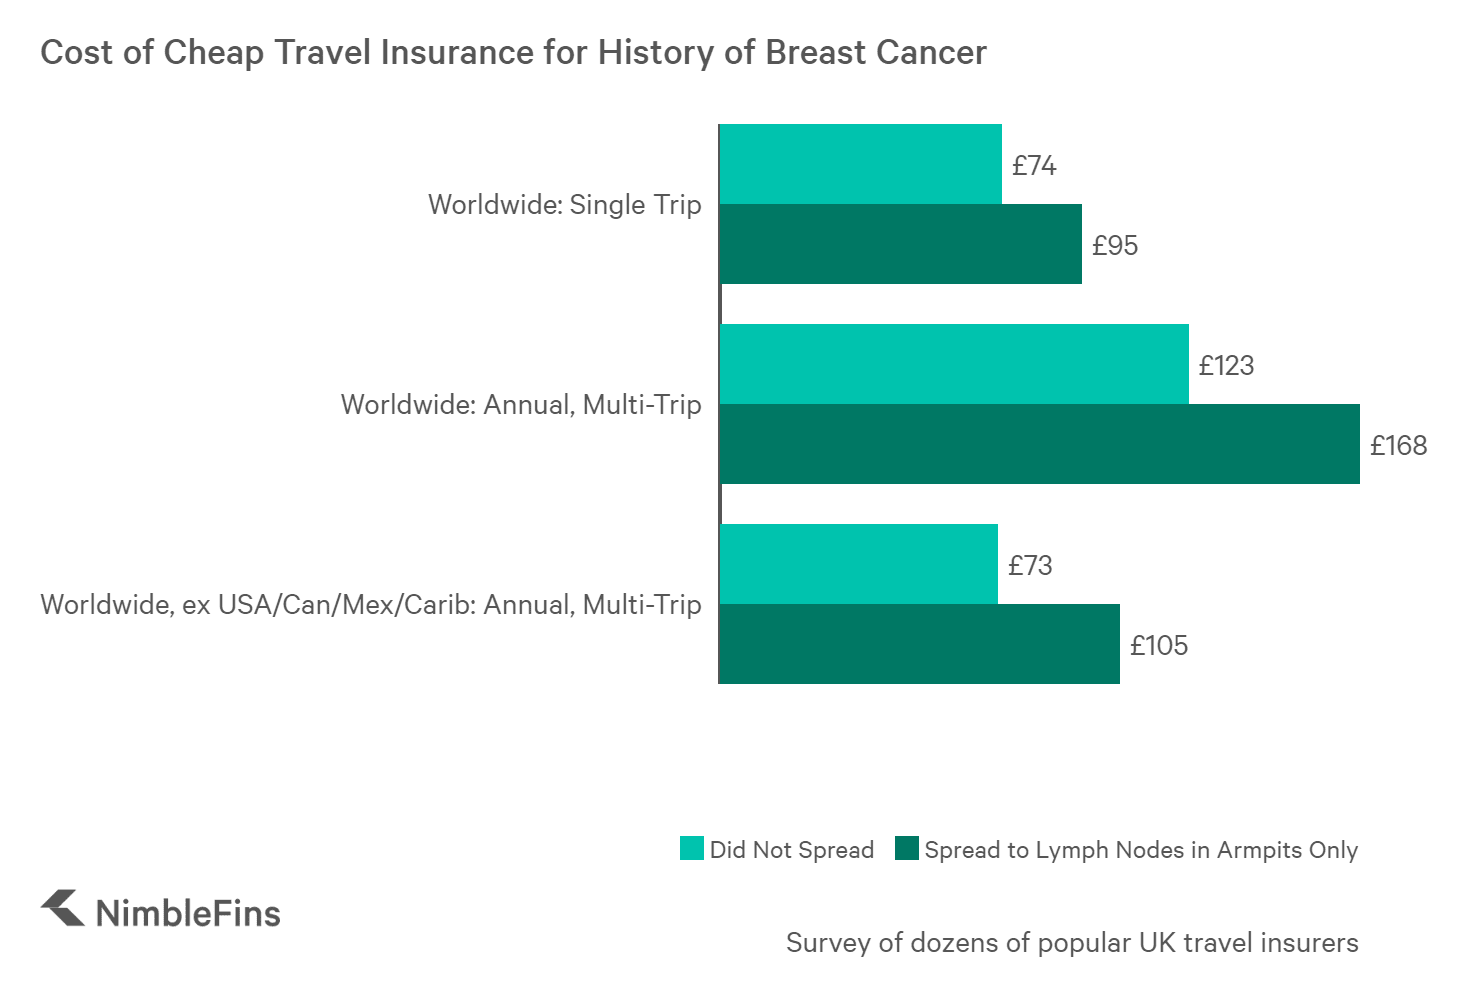 chart showing the cost of travel insurance for individuals with history of breast cancer